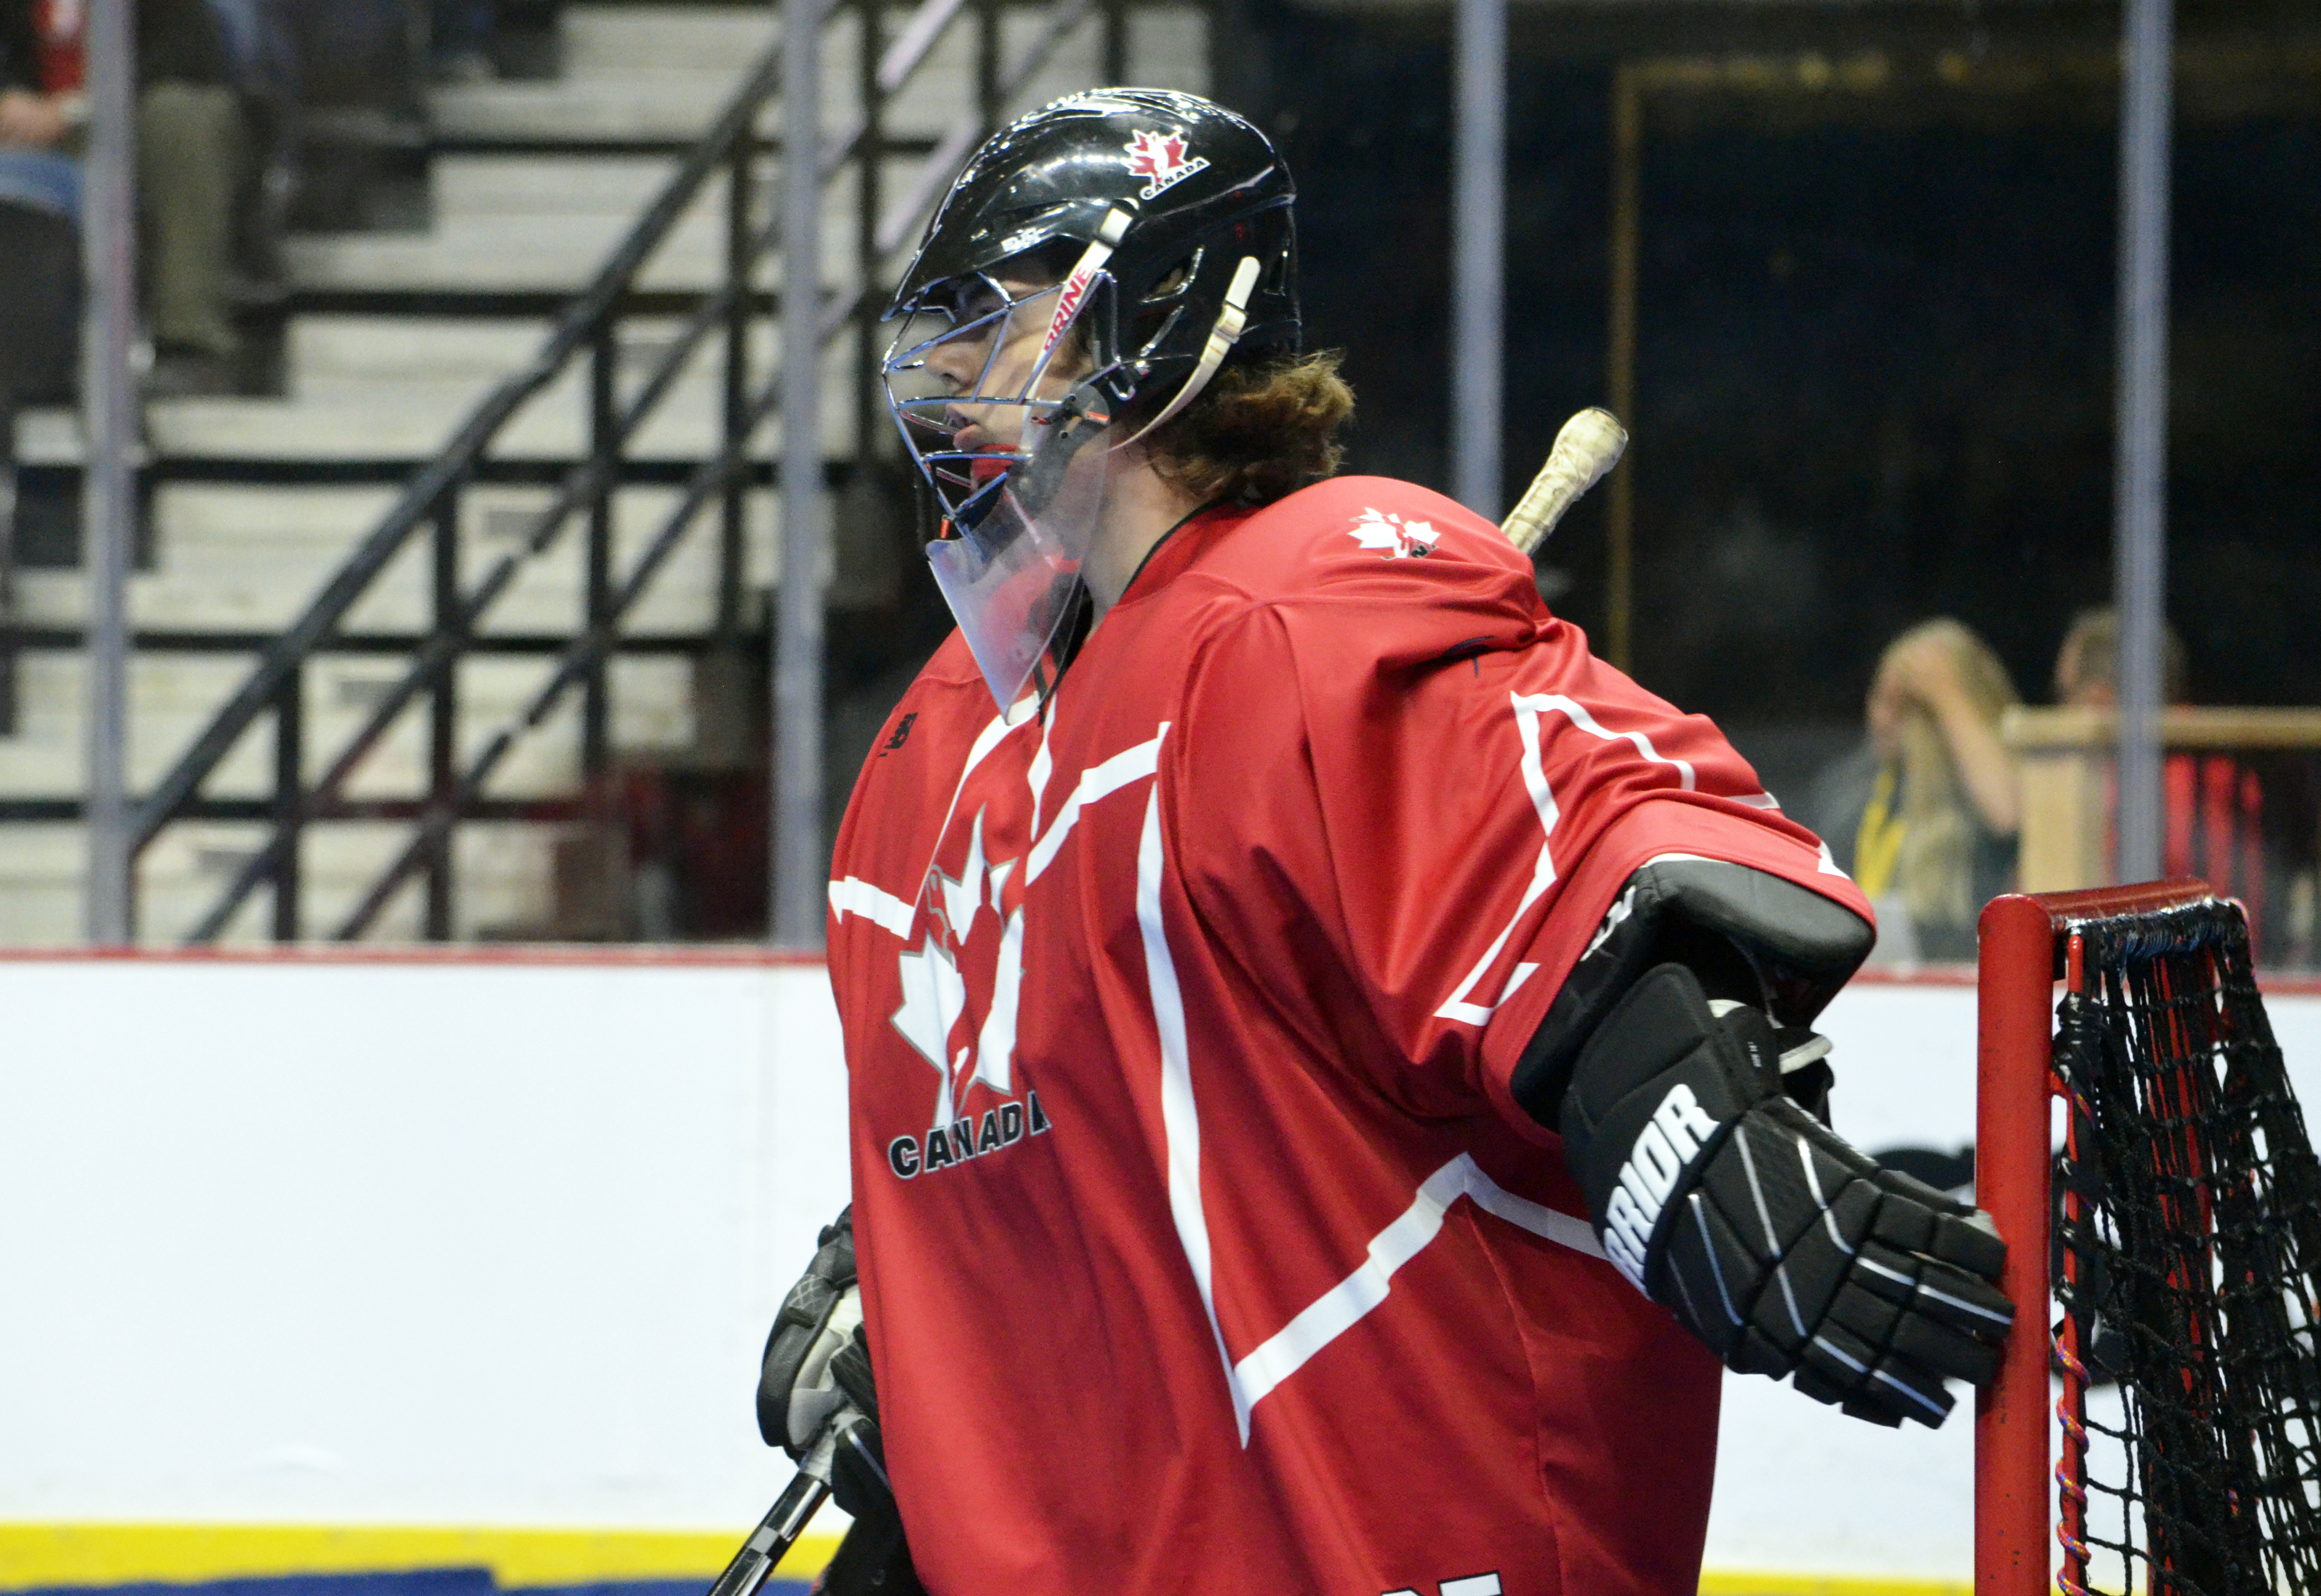 Team Canada goaltender Samuel Haines at the 2017 U17 Heritage Cup in Hamilton, Ont. (Photo credit: Anna Taylor)